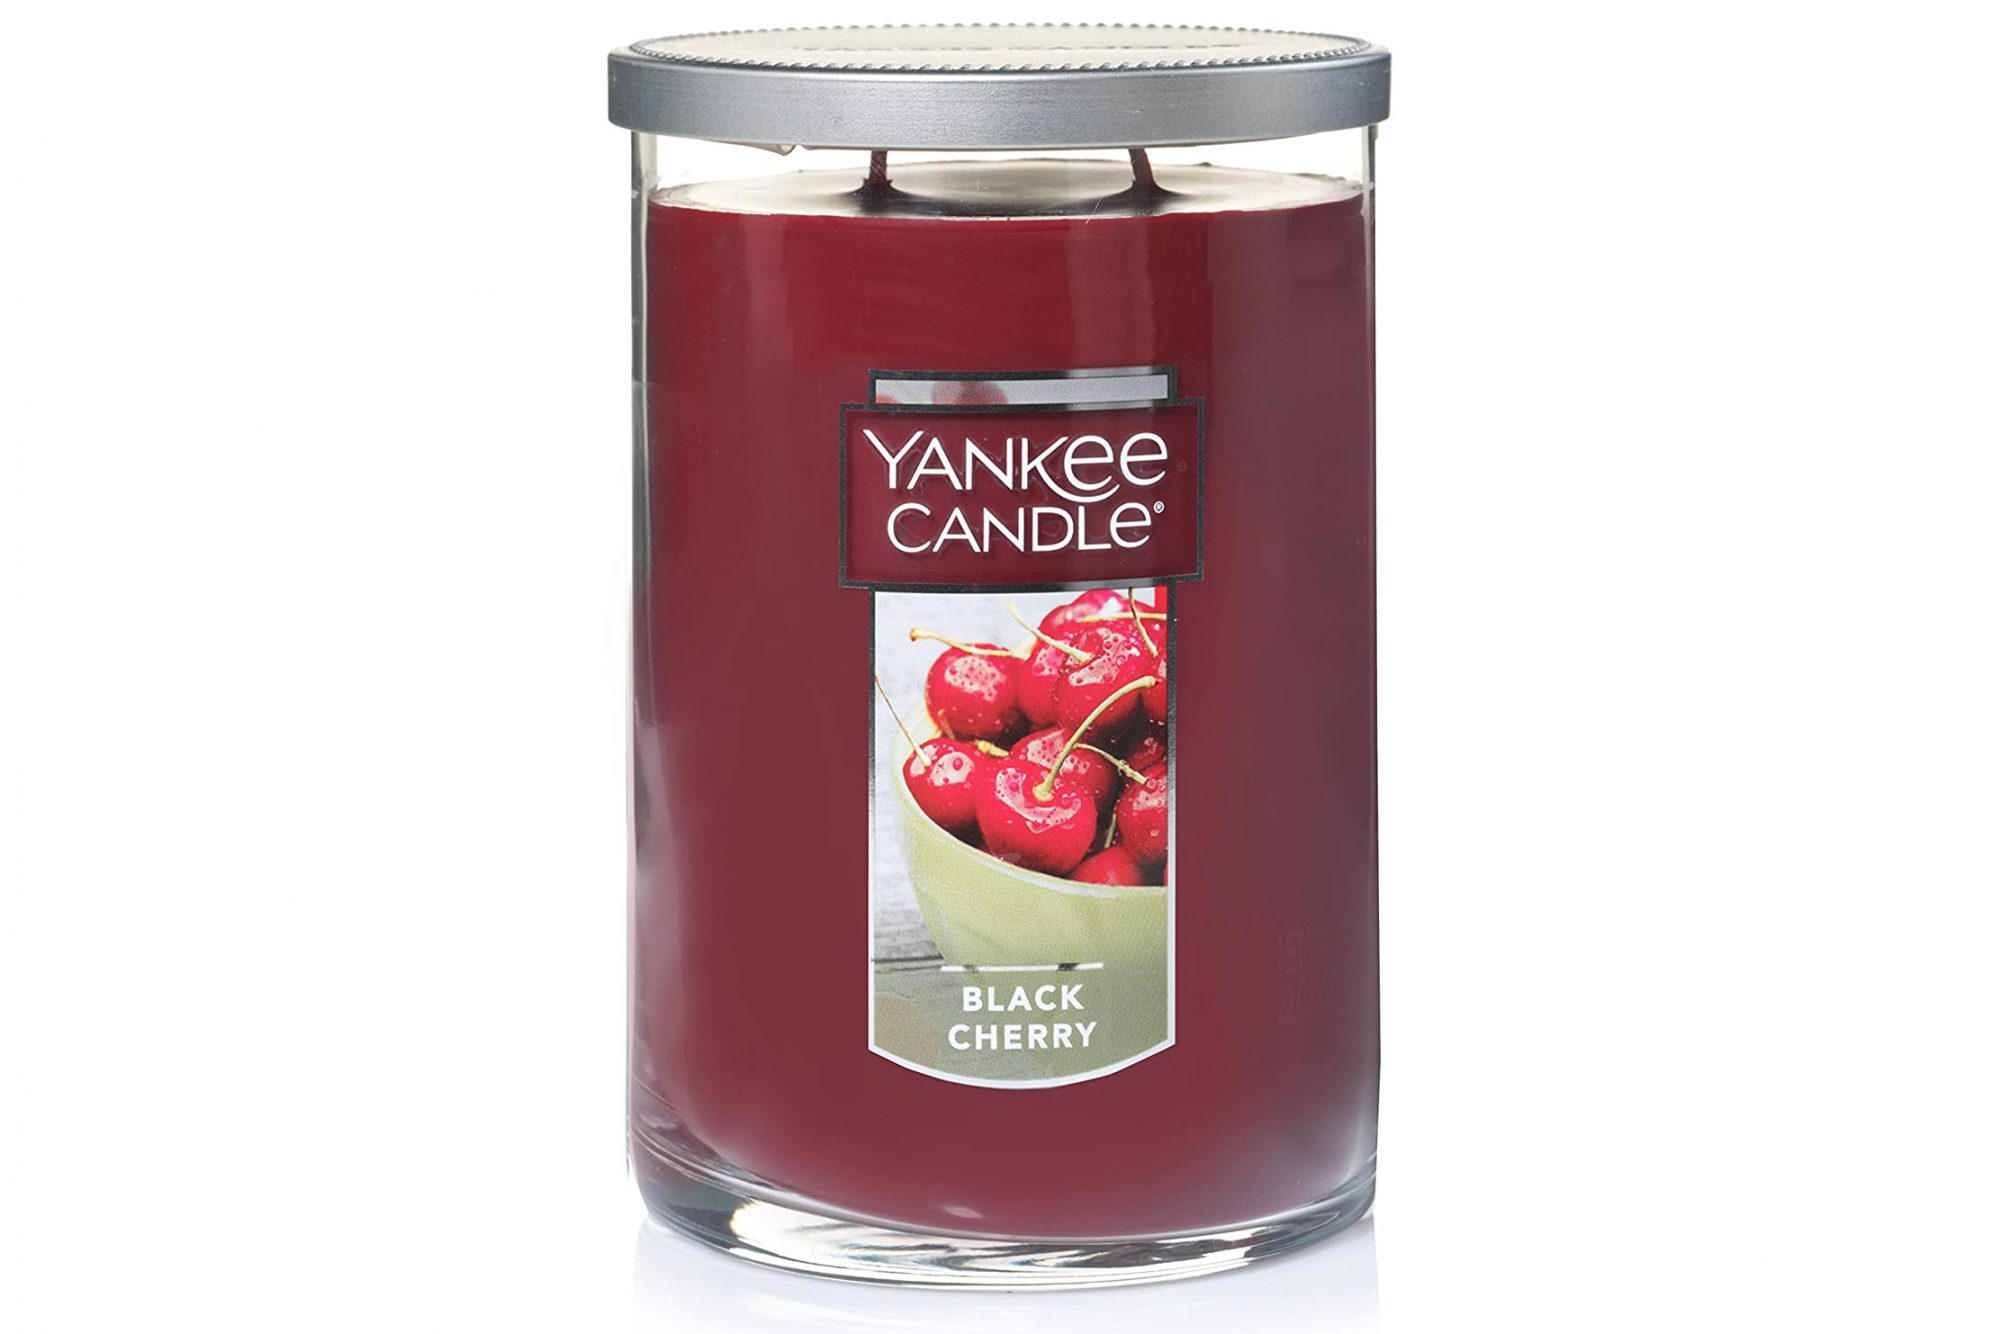 Yankee Candle Large Jar 2 Wick Black Cherry Scented Tumbler